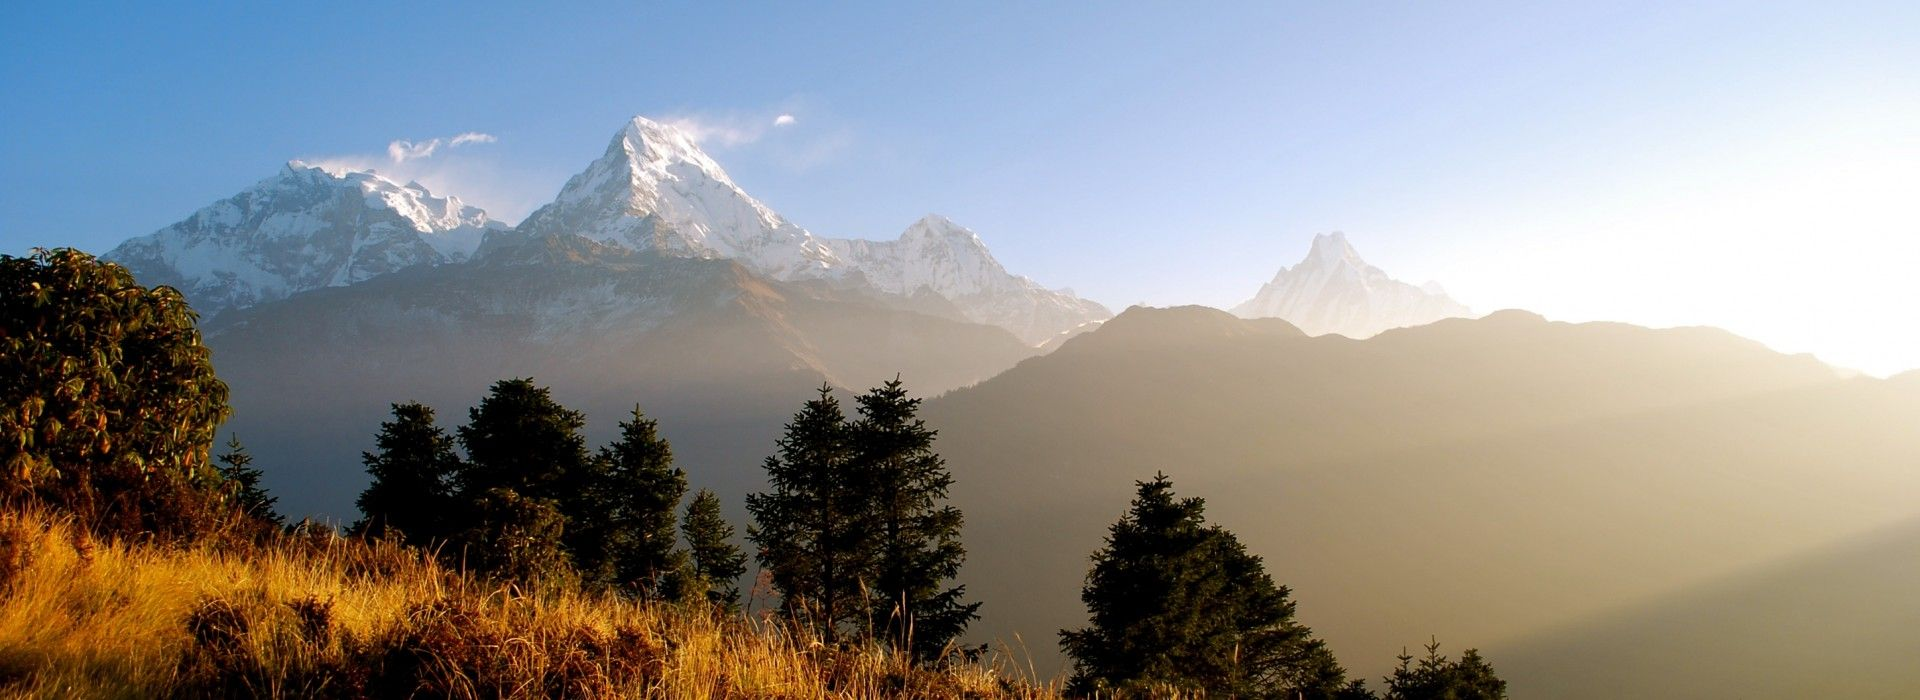 Sightseeing, attractions, culture and history Tours in Kathmandu